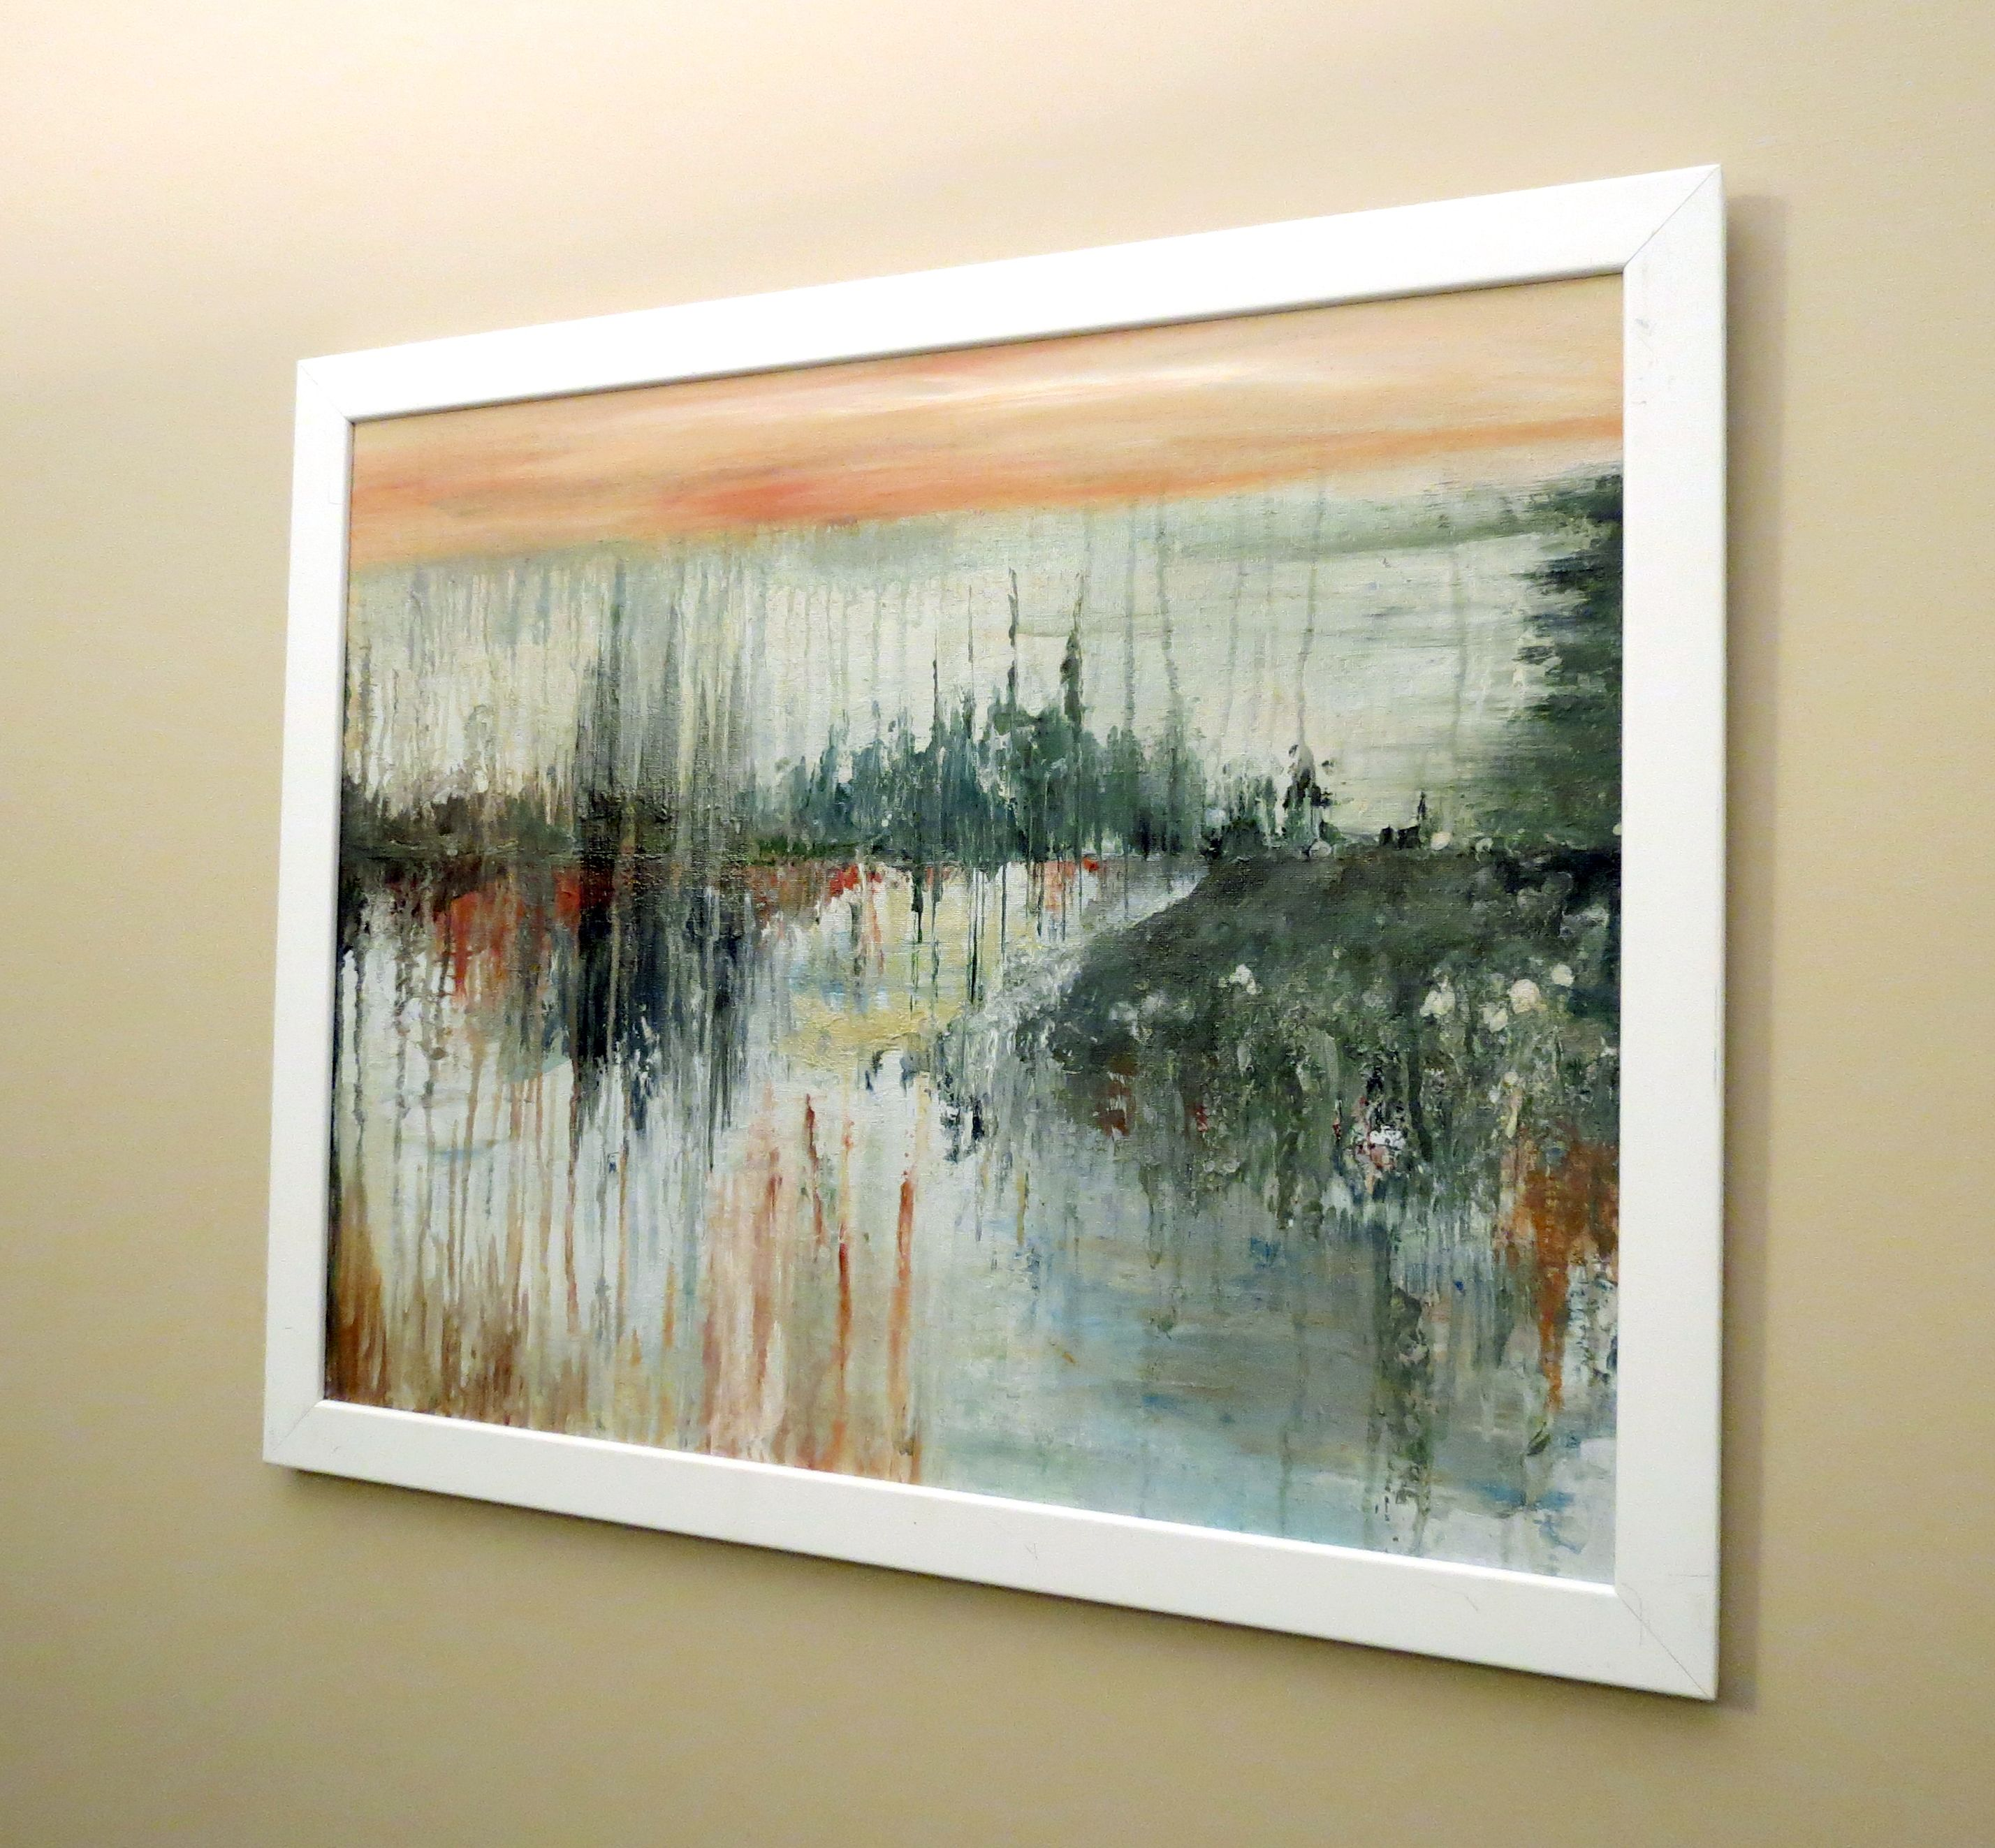 """Abstract Art """"Wilderness""""  Acrylic on Canvas 16"""" x 20""""  $150.00 (framed) Website:  www.facebook.com/fayes.art"""